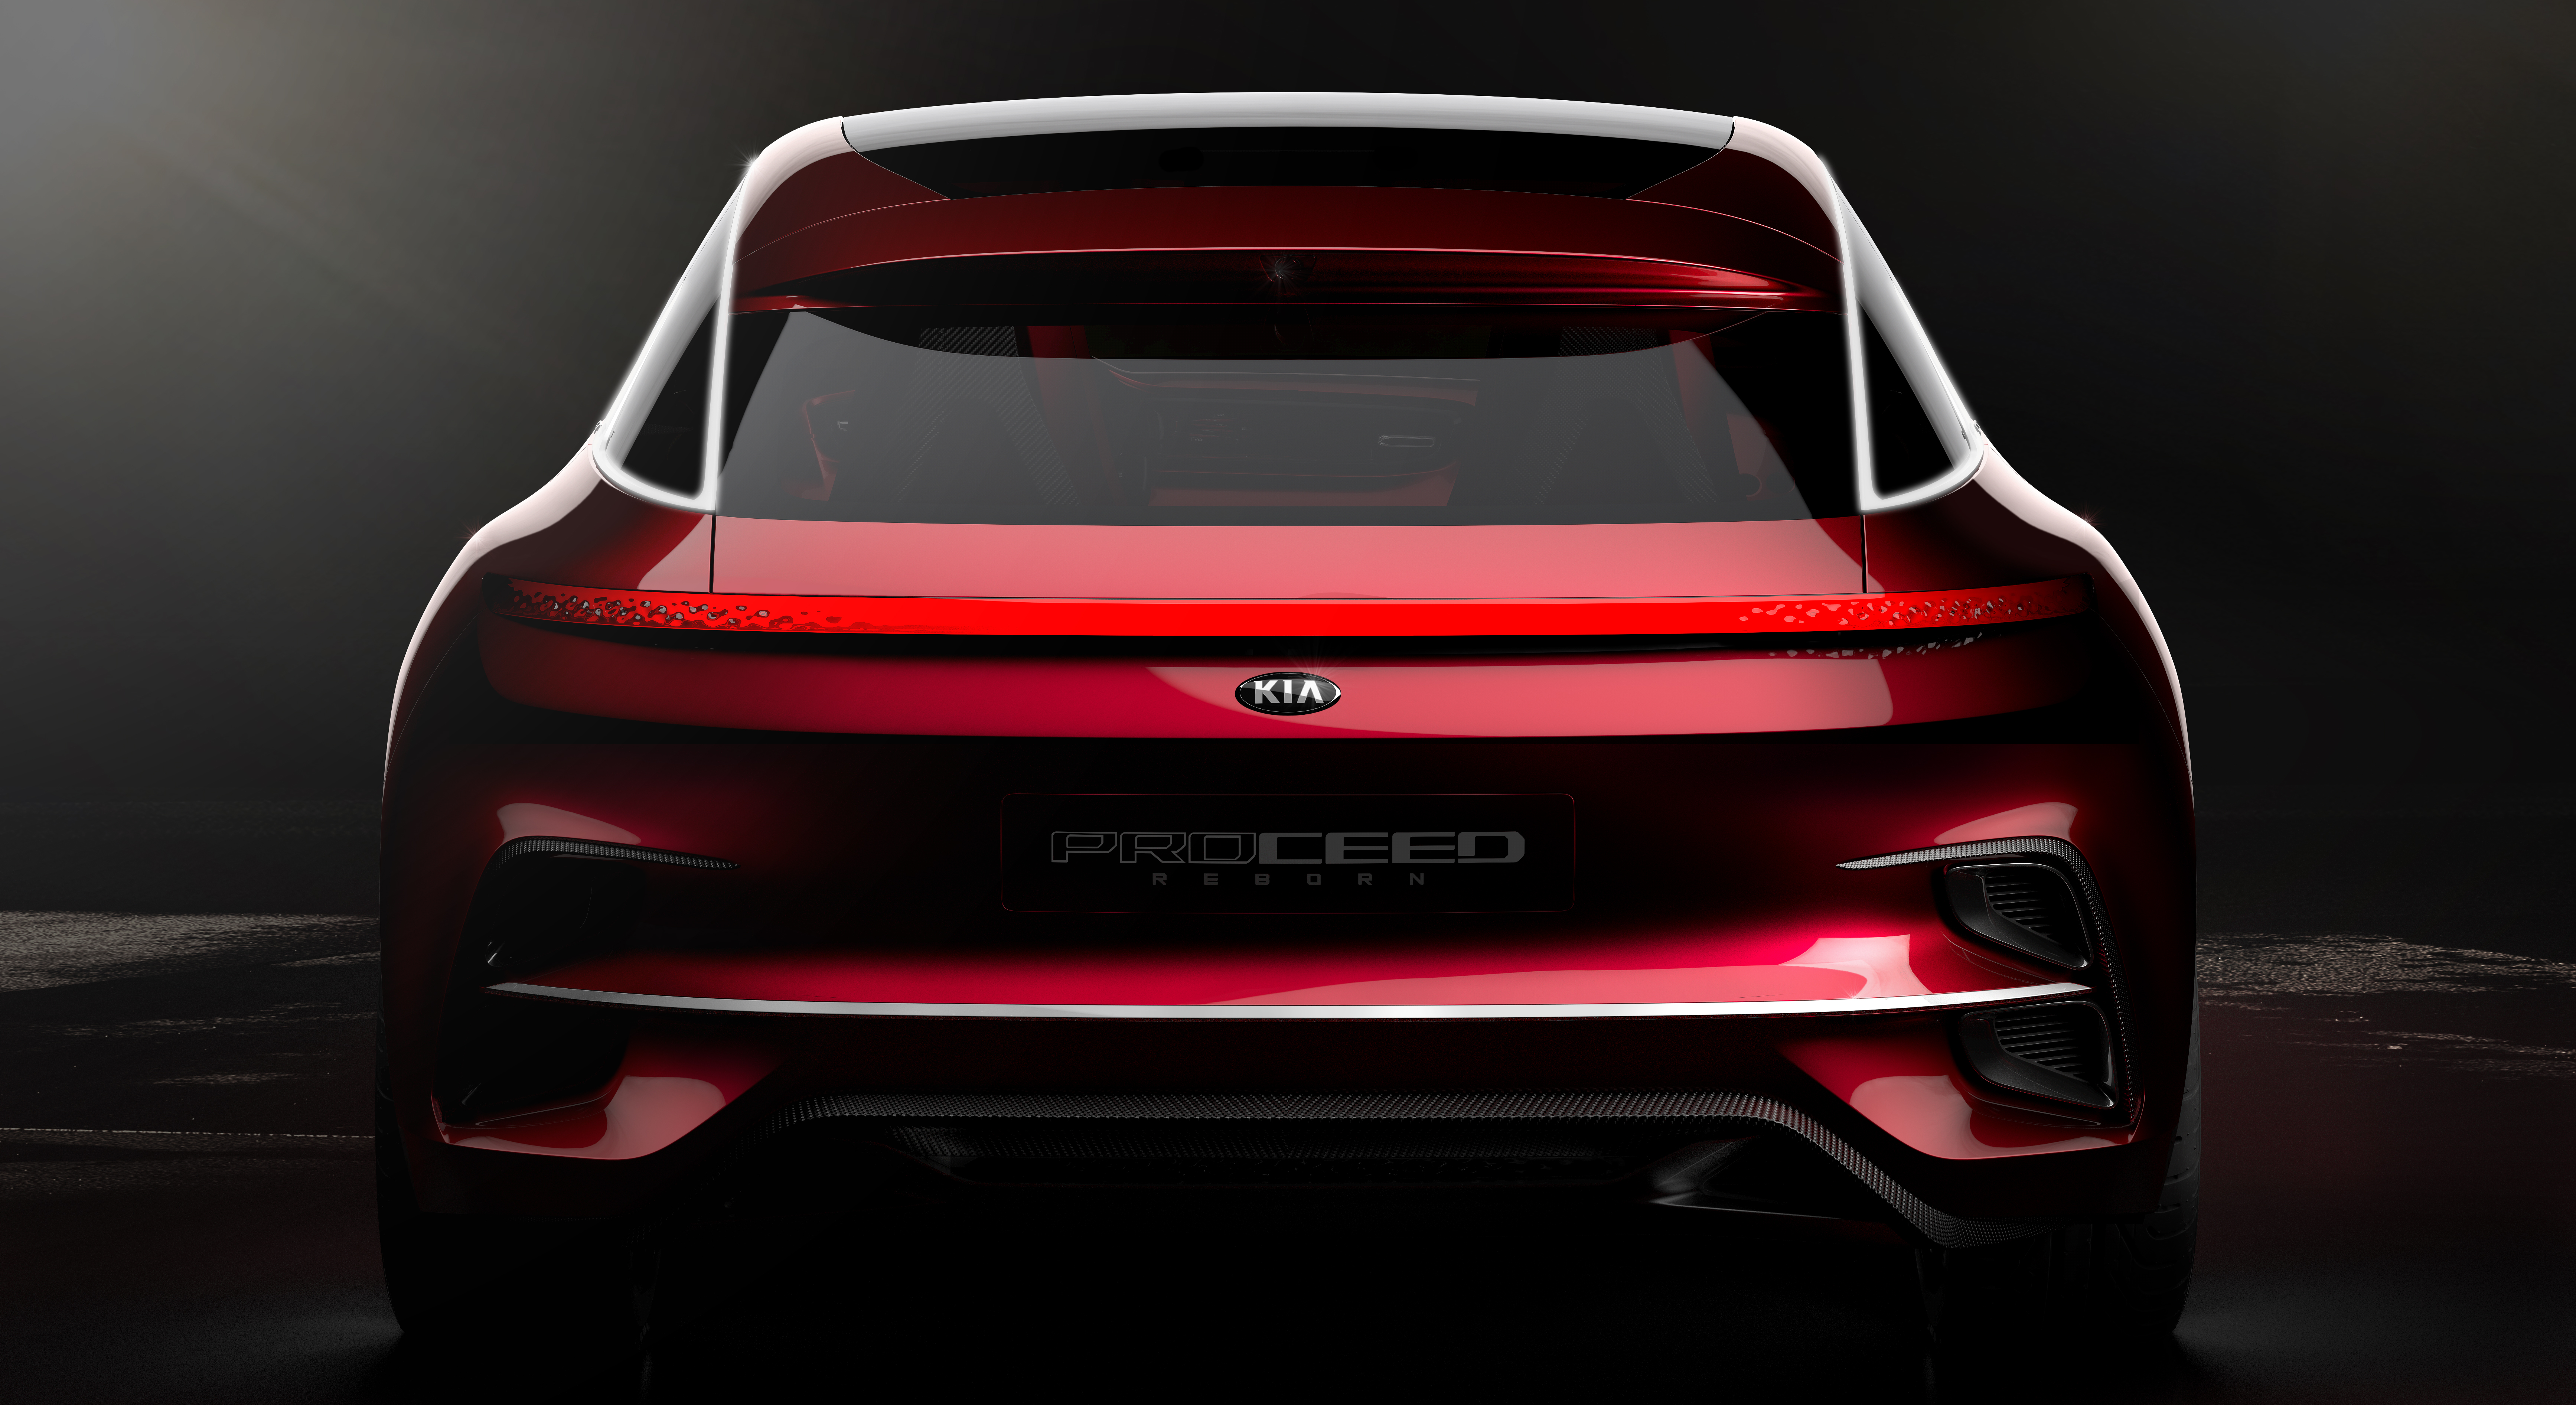 World Debut For Kia Proceed Concept In Frankfurt Pro Ceed 7 To Cart